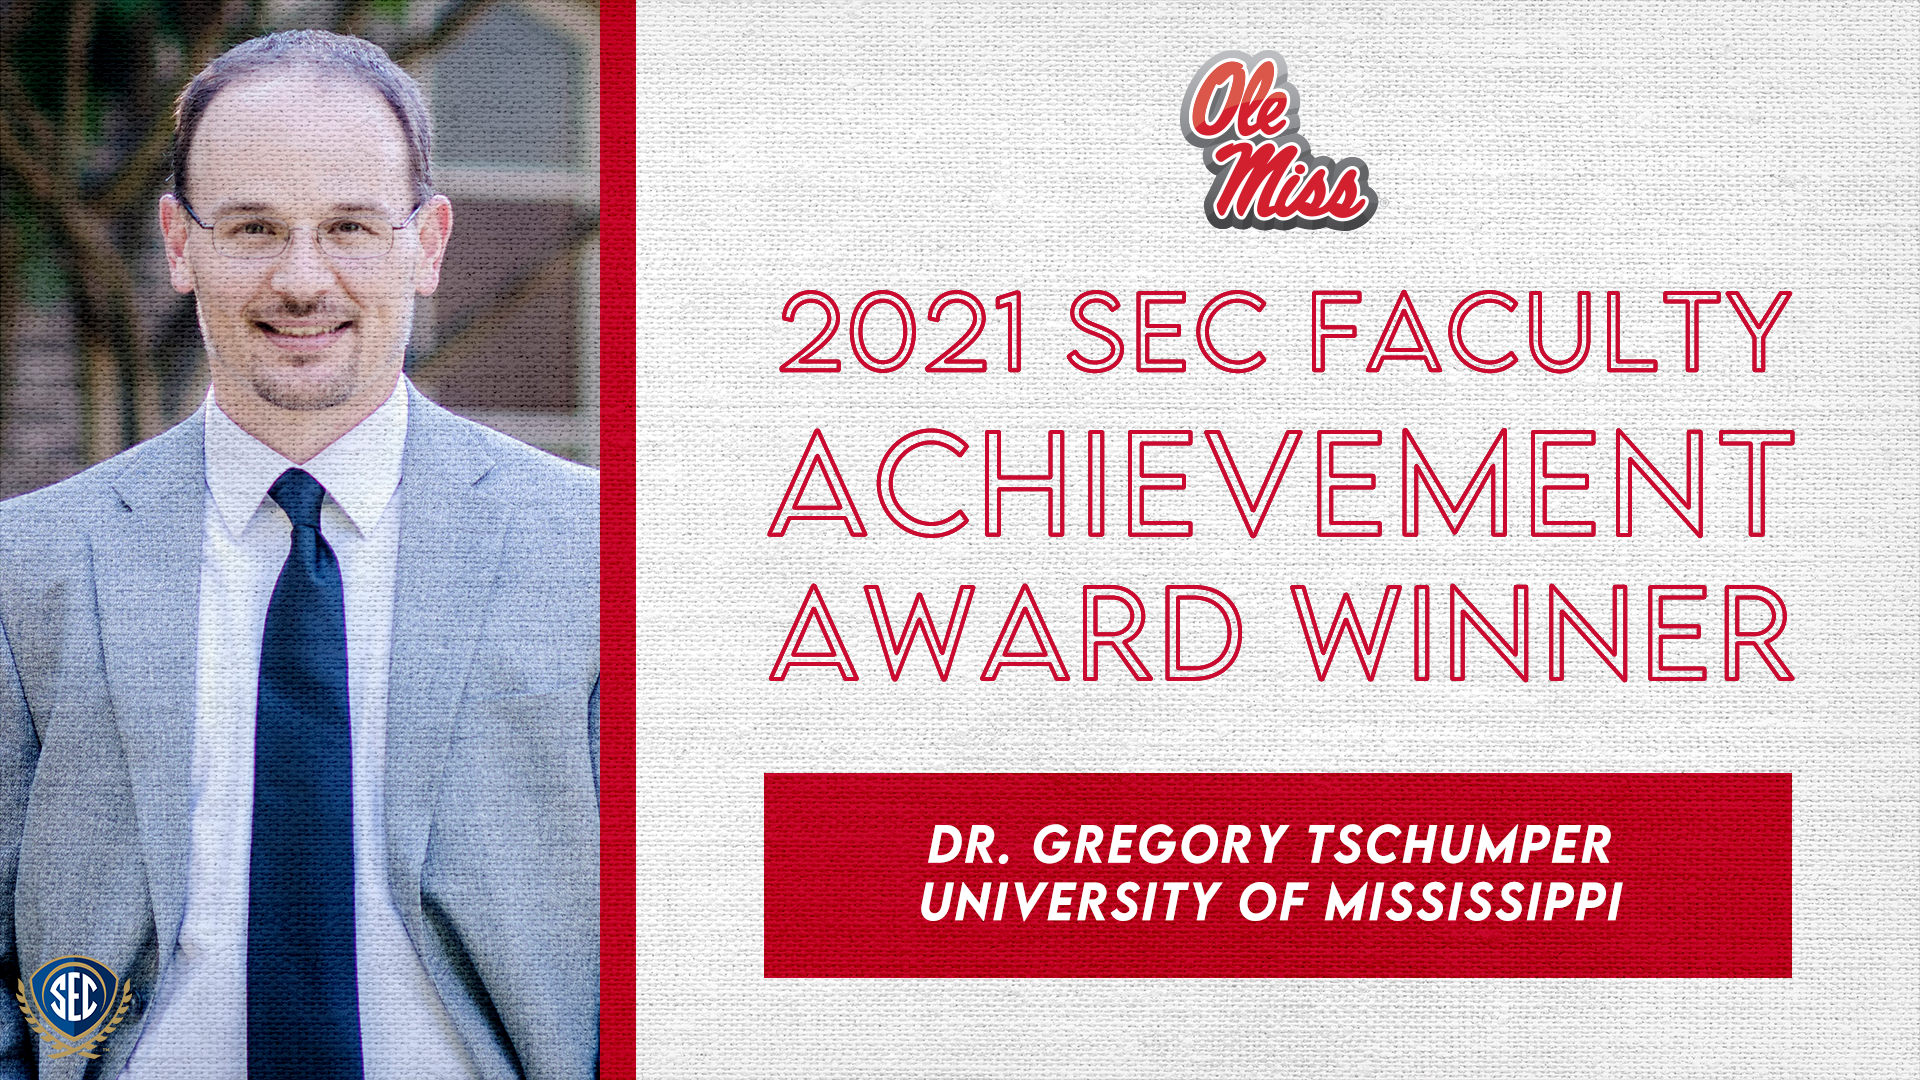 SEC Announces Dr. Greg Tschumper Wins 2021 Faculty Achievement Award for University of Mississippi